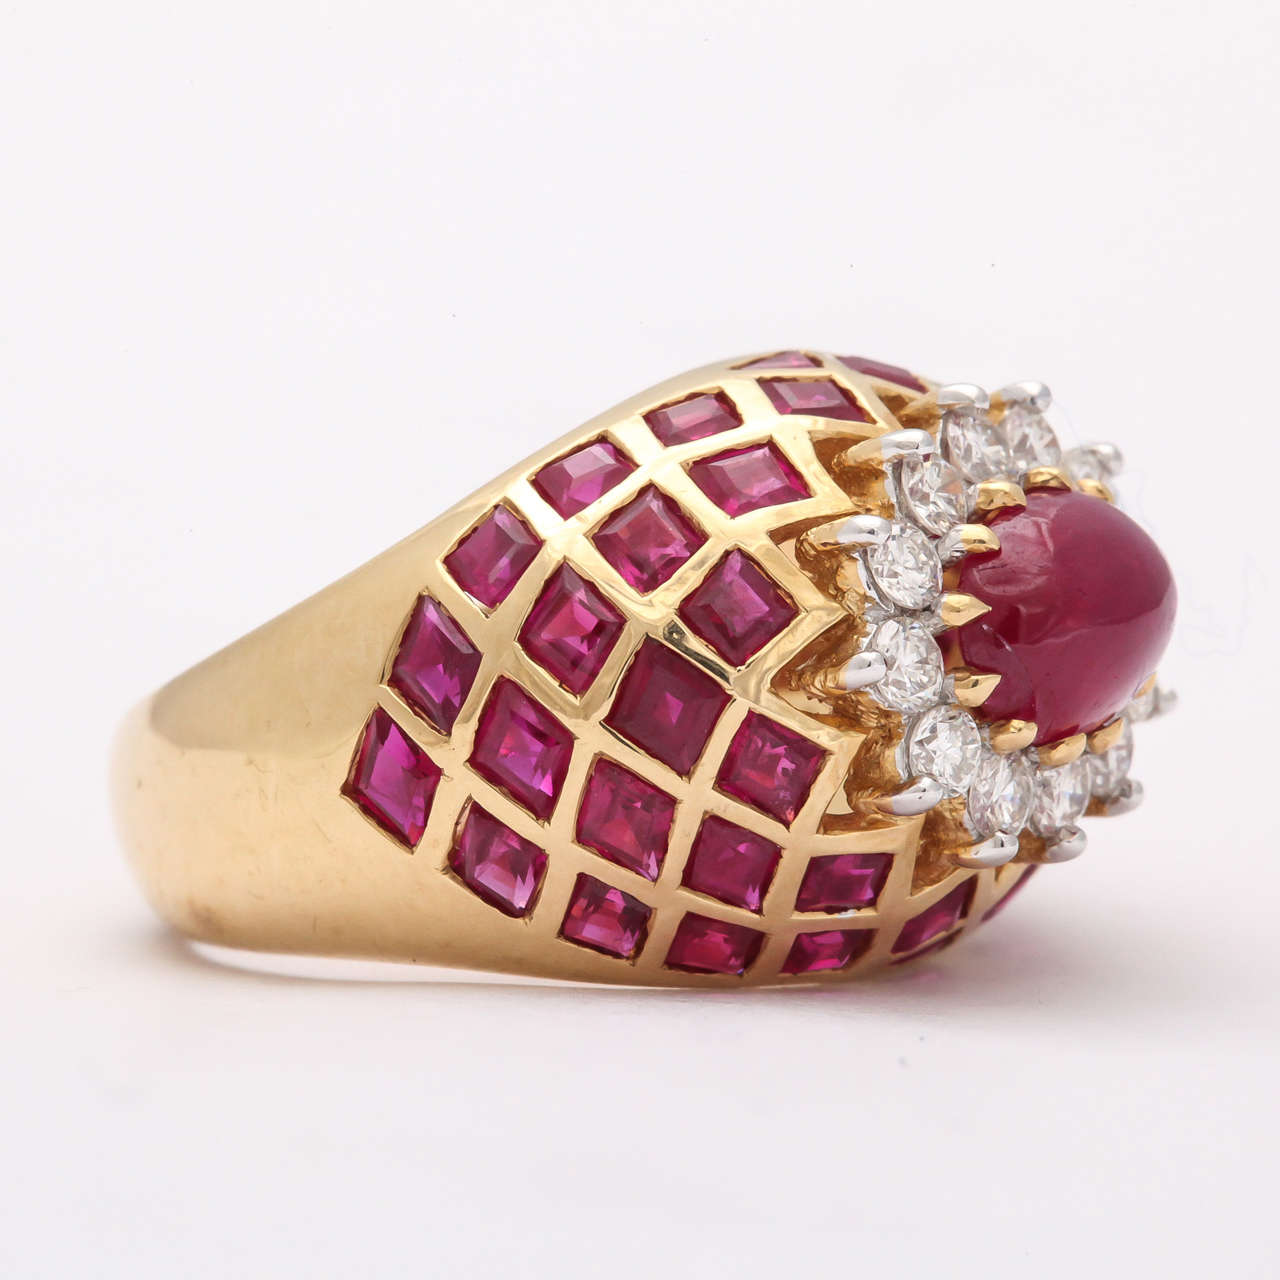 Cabochon Ruby Diamond Gold Ring 4